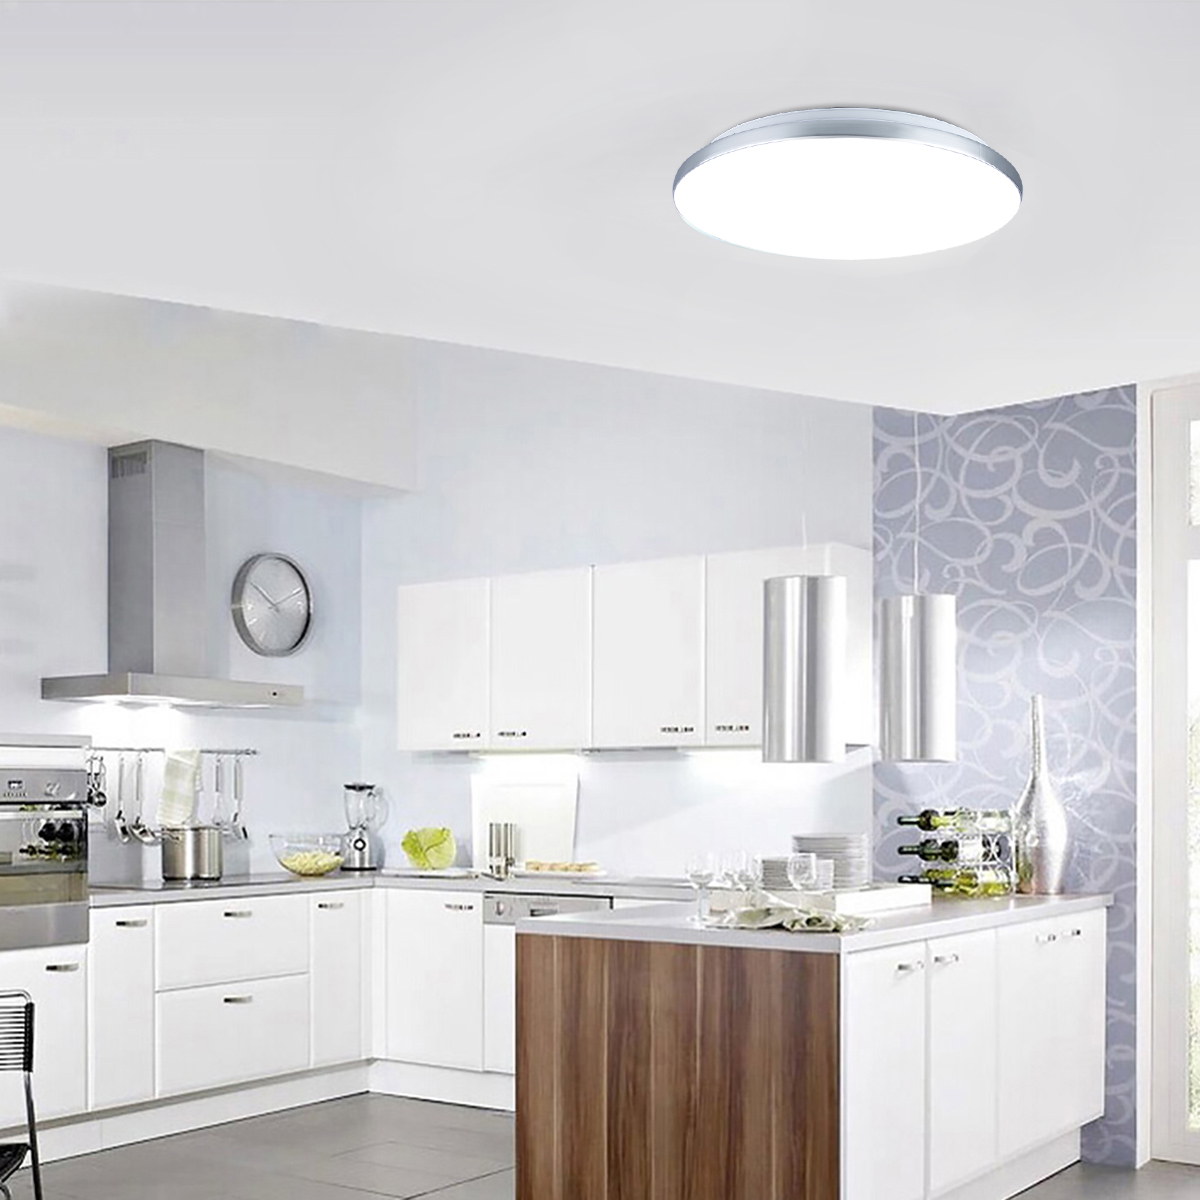 Kitchen Lighting Ceiling Fixtures: 24W Round LED Ceiling Down Light Flush Mount Home Kitchen